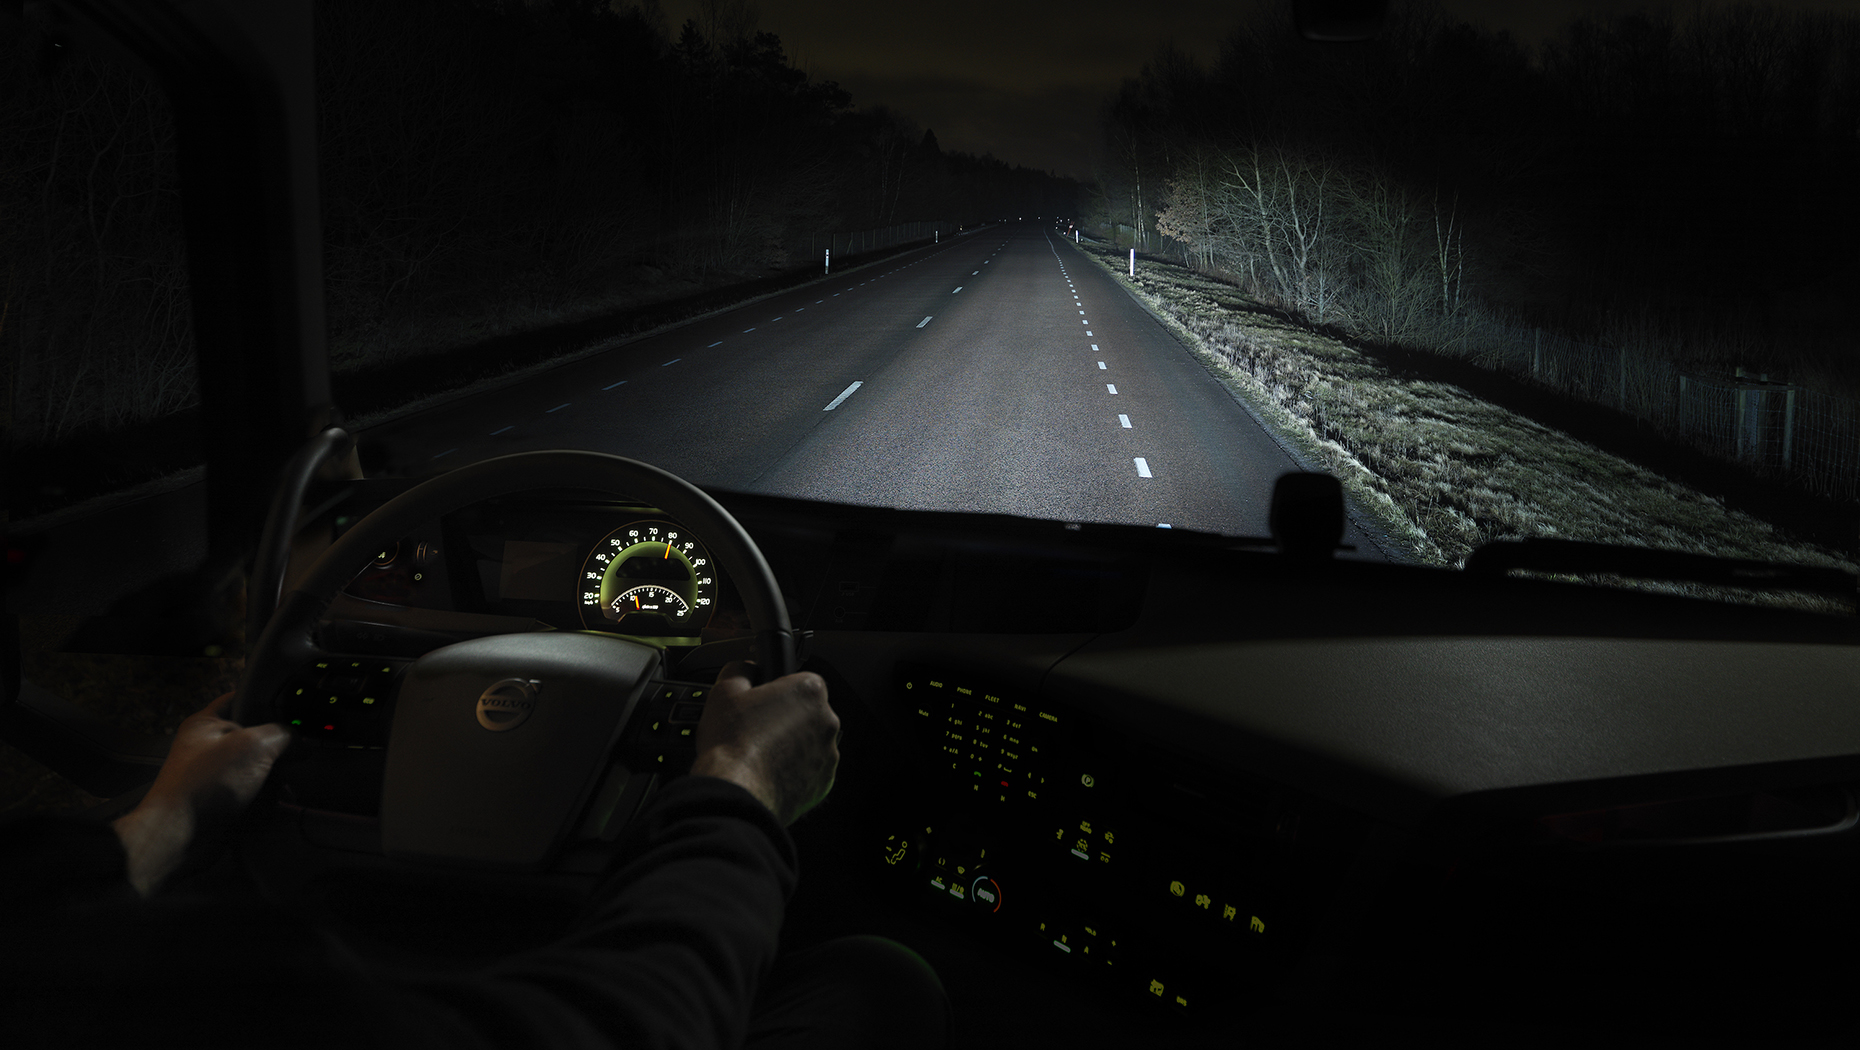 Night mode from driver's seat.